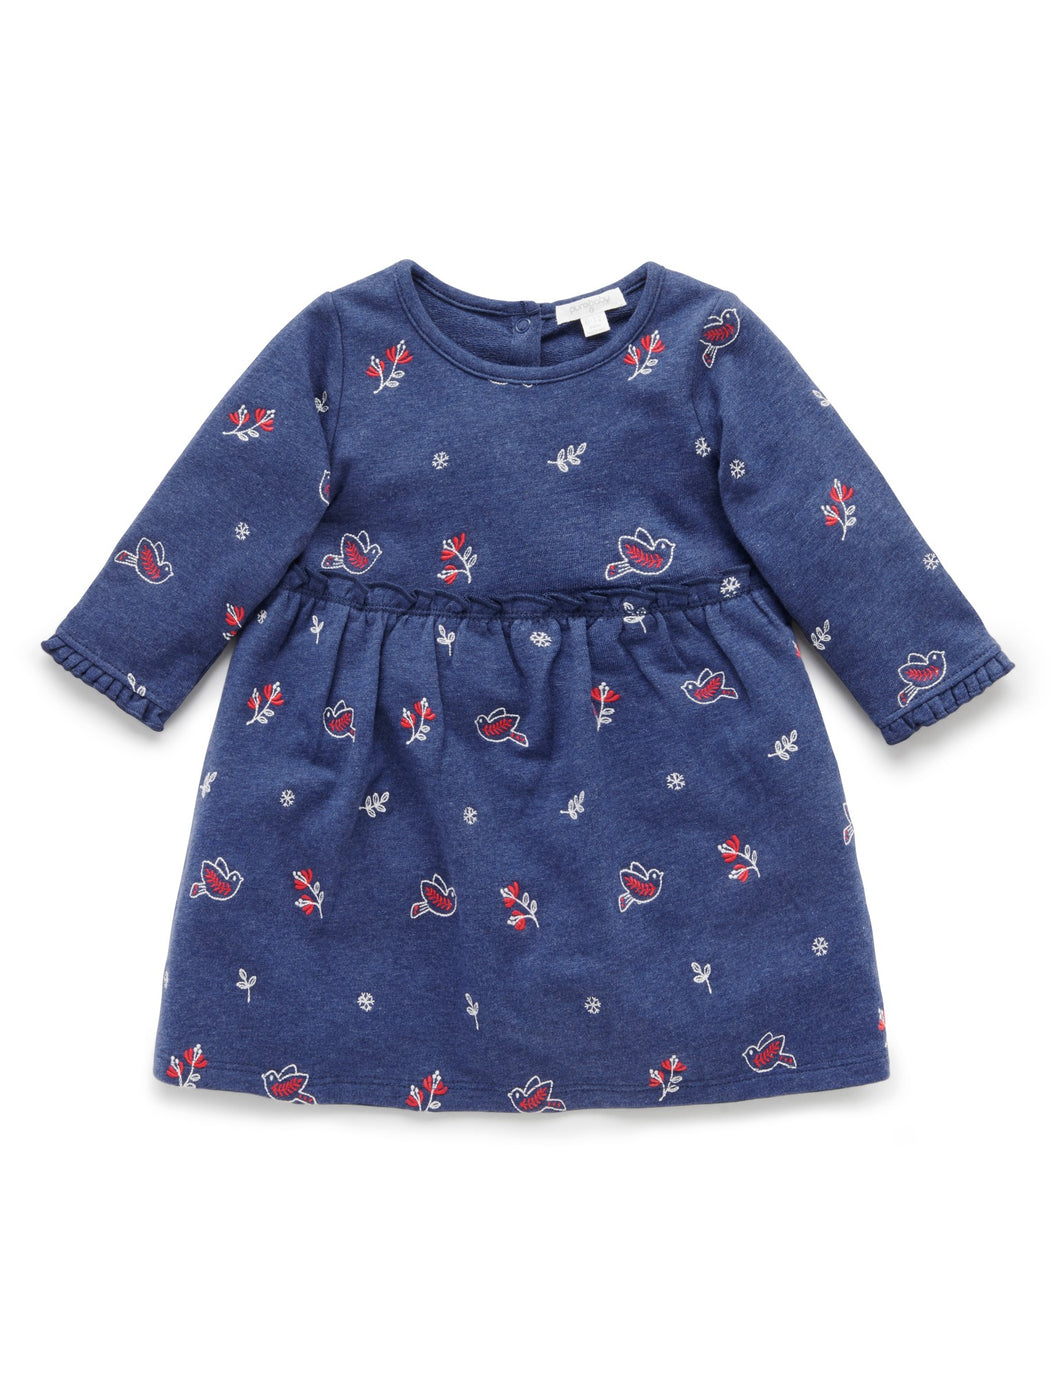 Pure Baby | Chalet Dress - Navy Print